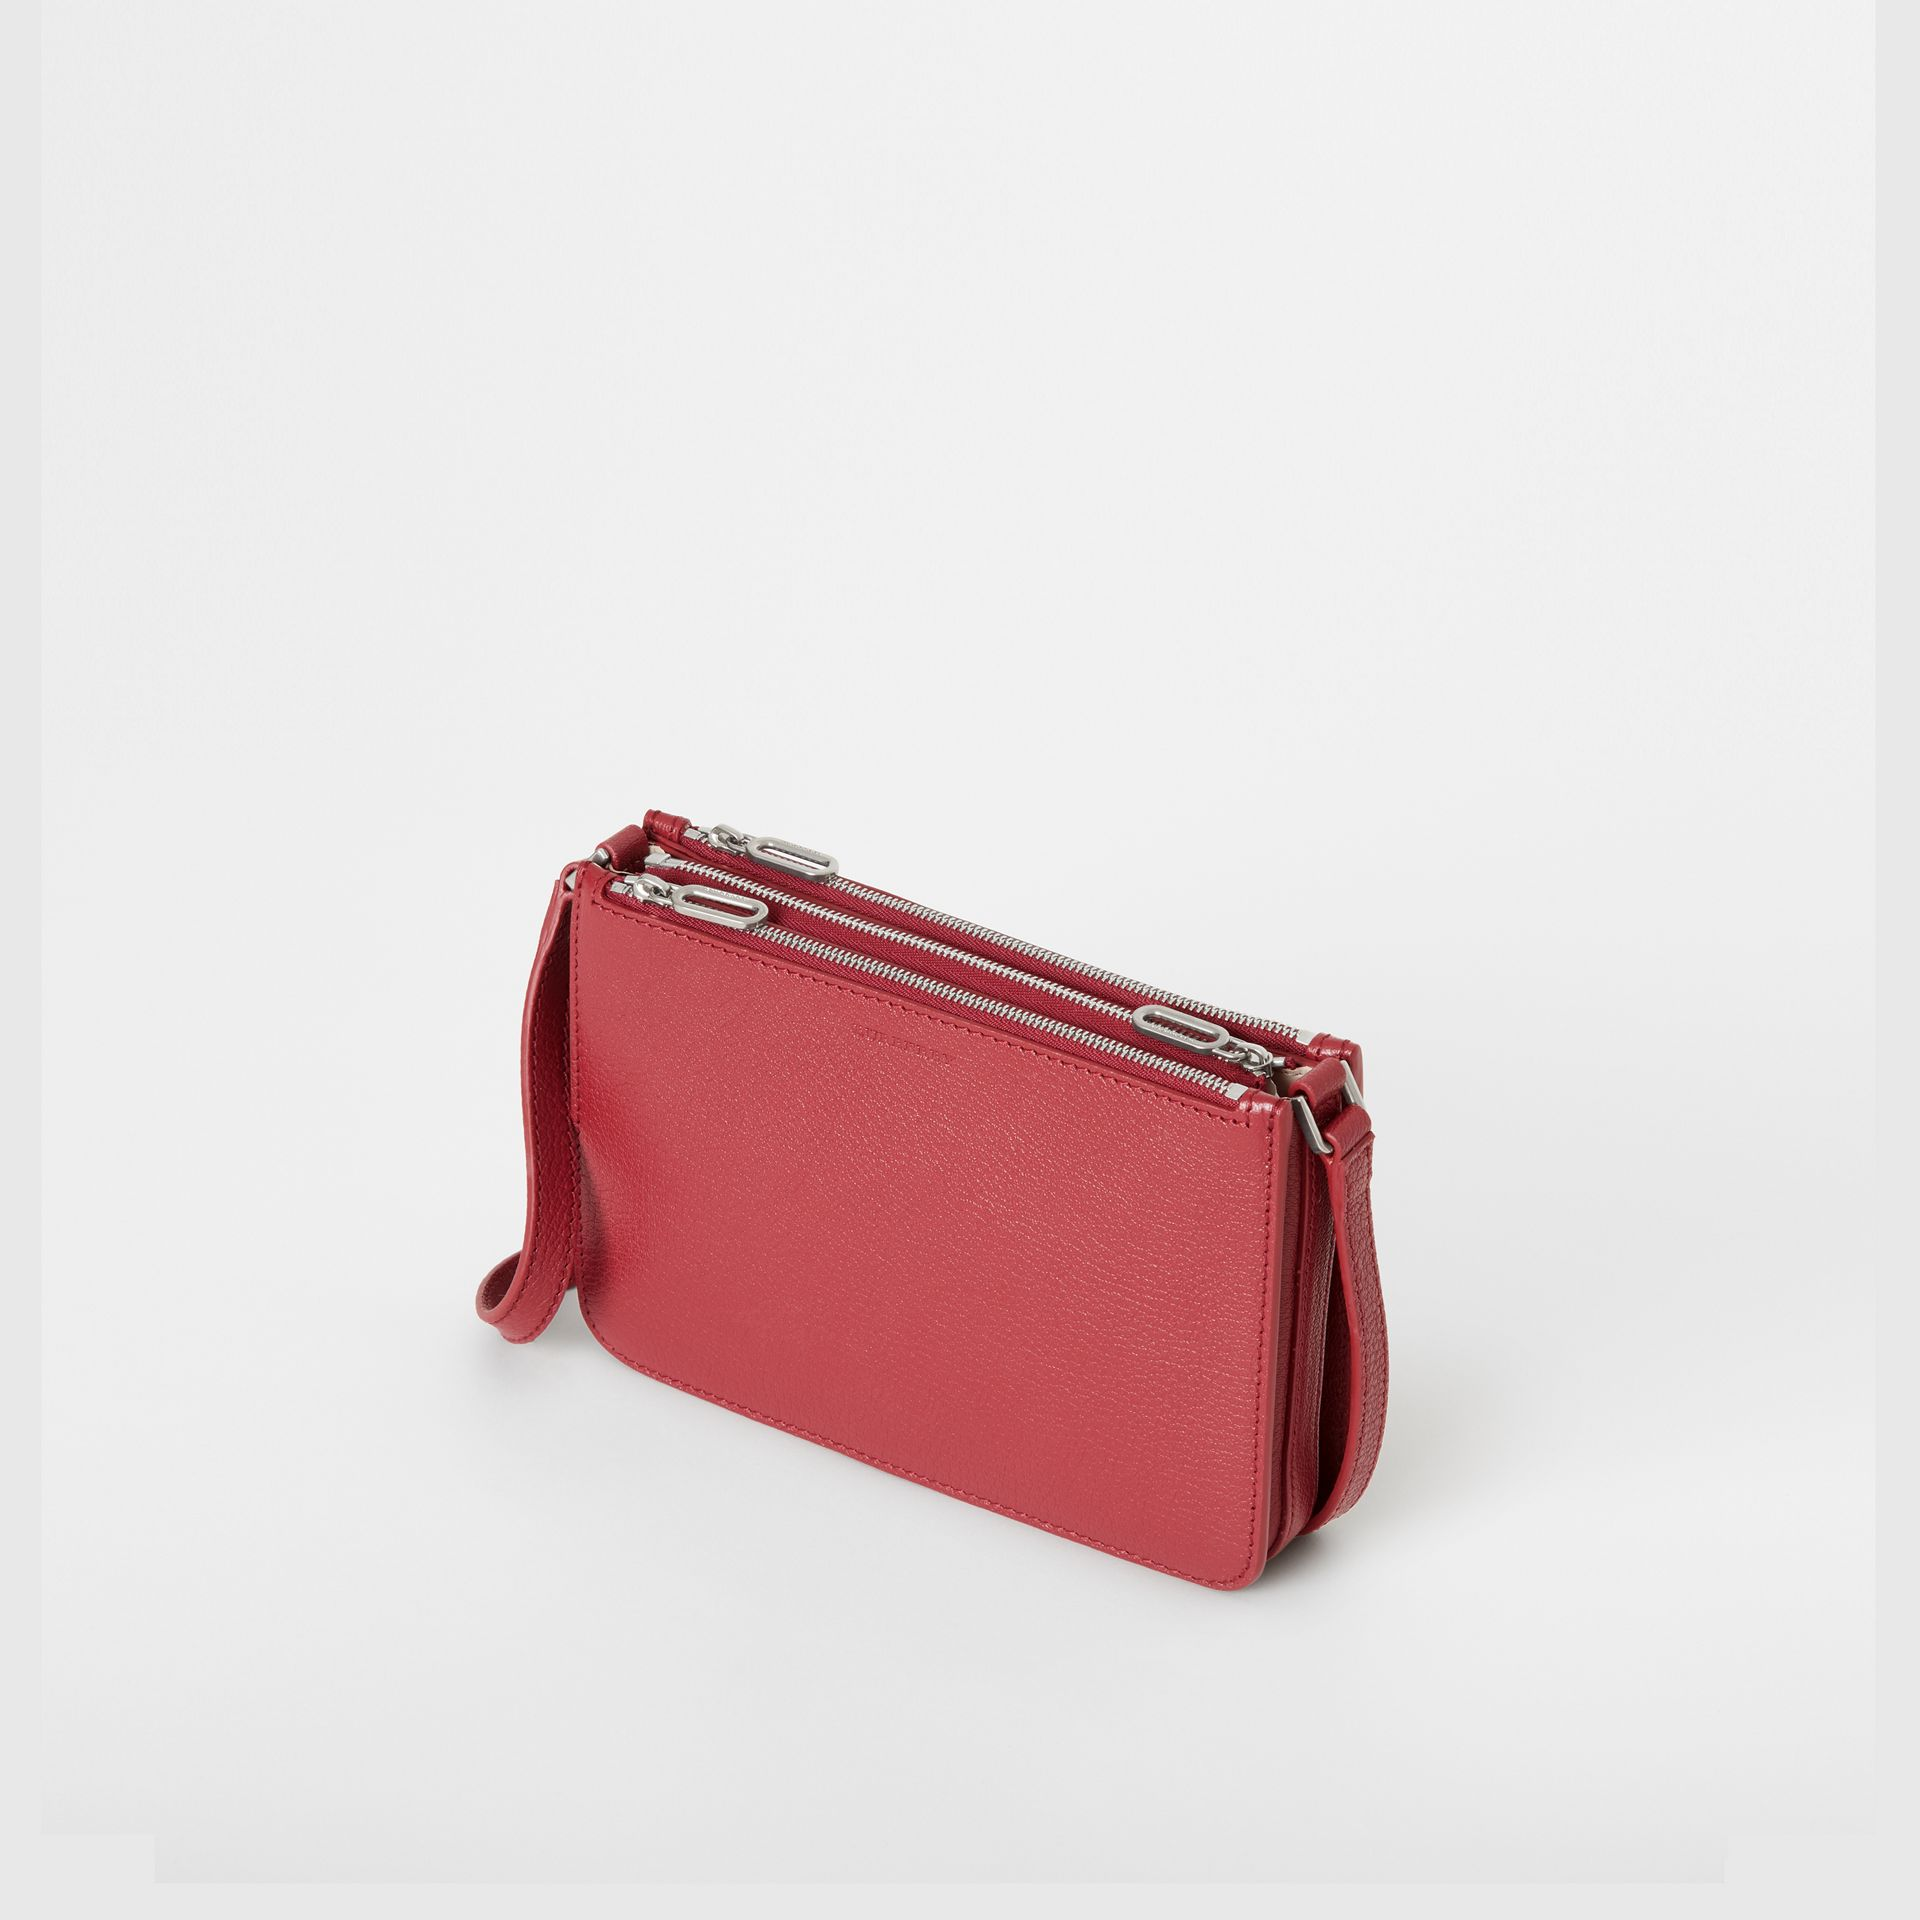 Triple Zip Grainy Leather Crossbody Bag in Crimson - Women | Burberry - gallery image 2